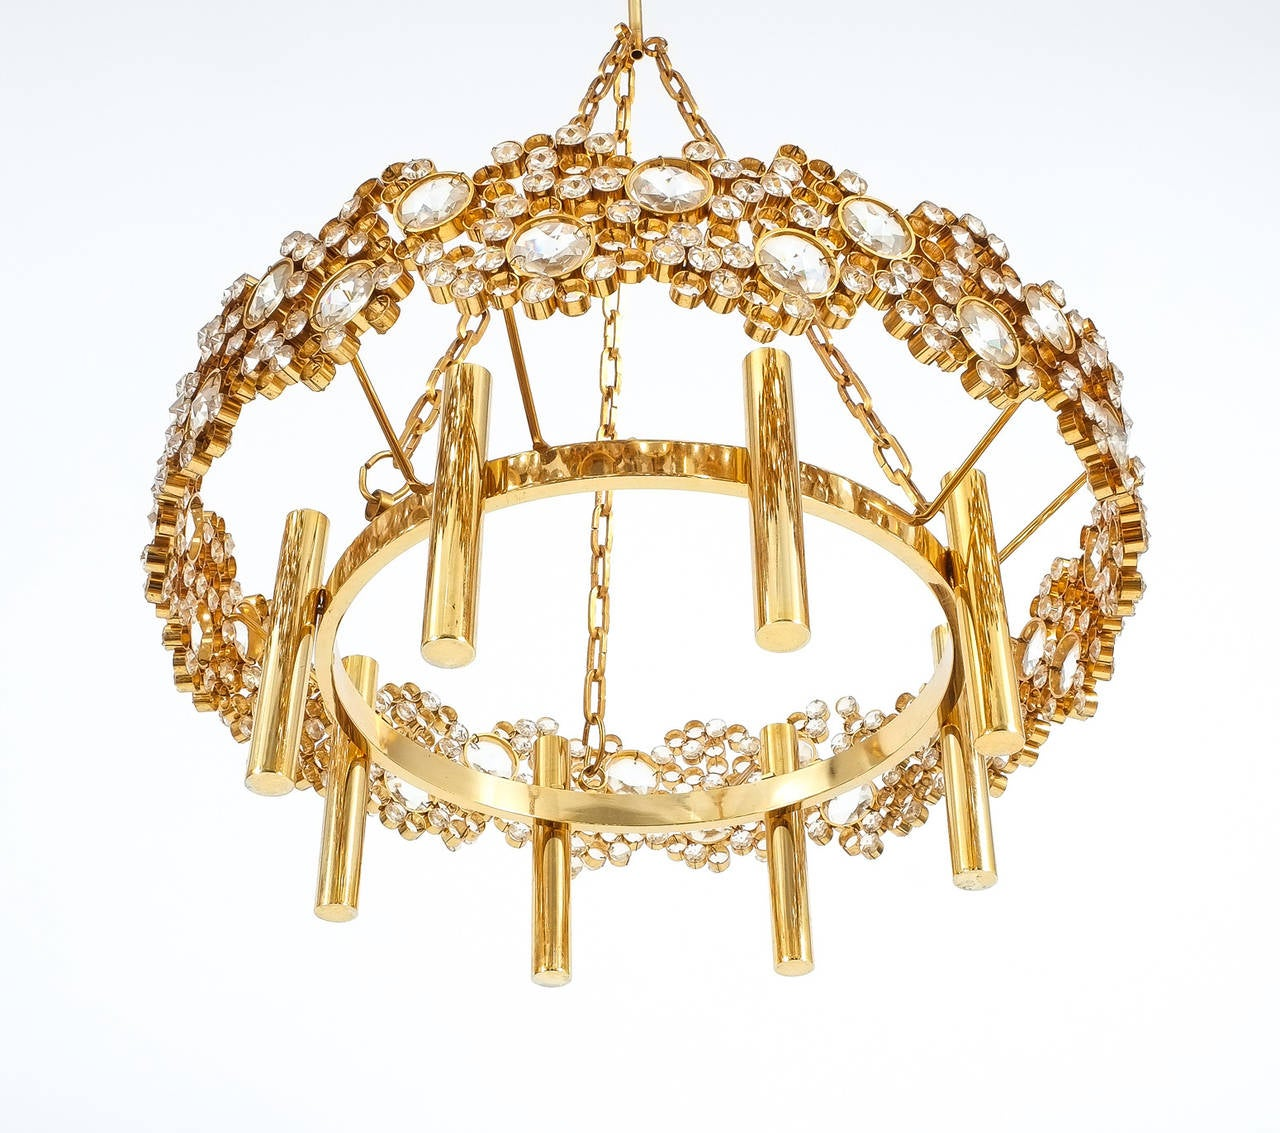 Large Gilt Brass and Glass Chandelier Lamp, Palwa circa 1960 For Sale 1